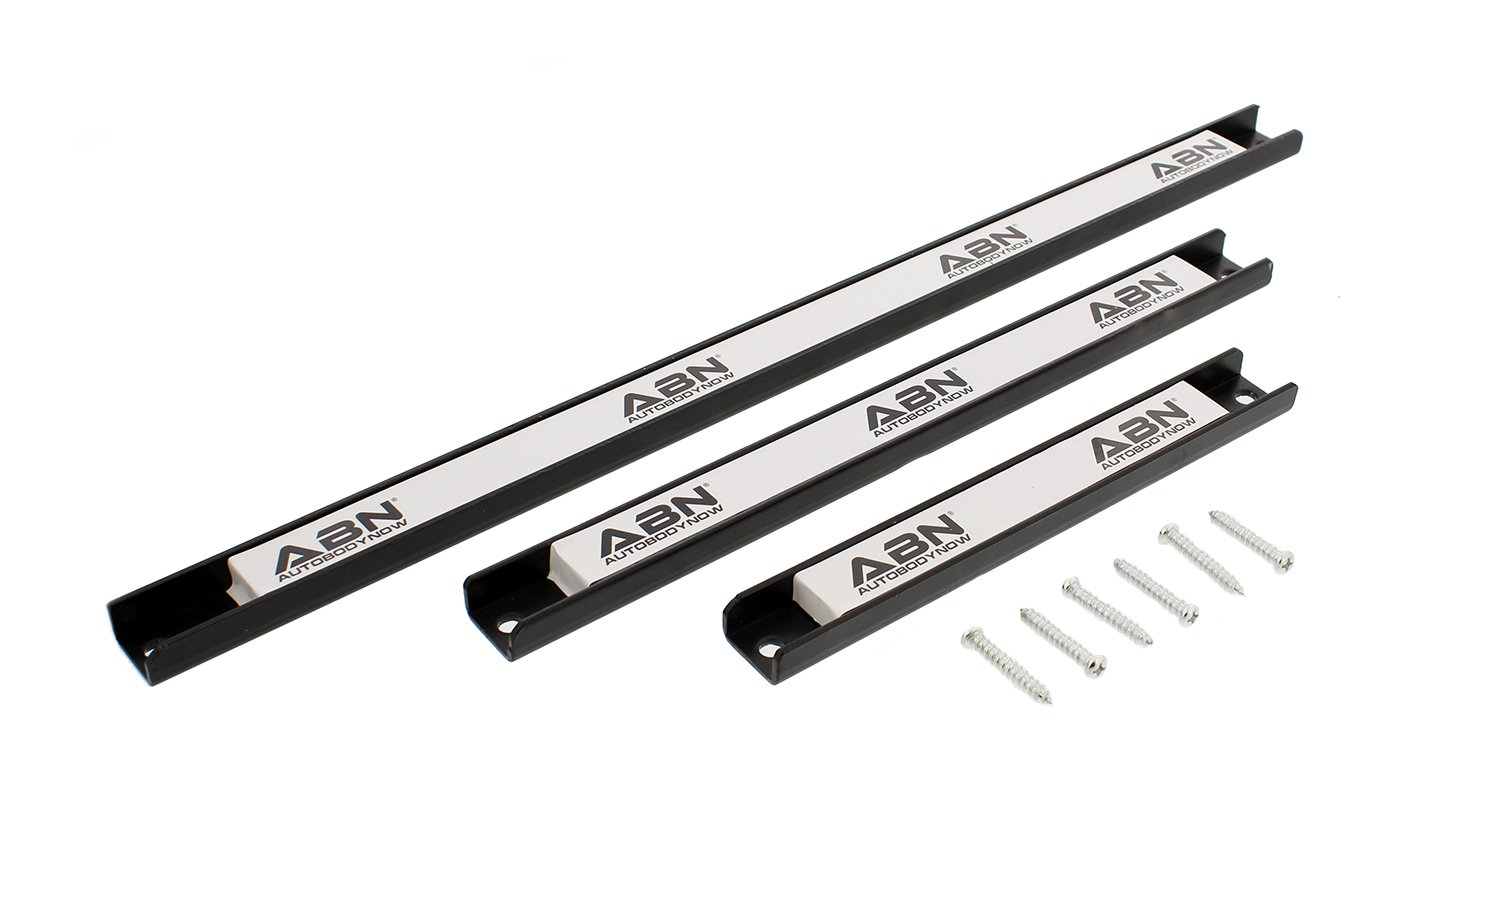 """ABN Magnetic Tool Holder 3-Piece Set of 8"""", 12"""", 18"""" Inch Strip Racks with Mounting Screws – for Garage and Workshop Auto Body Now"""